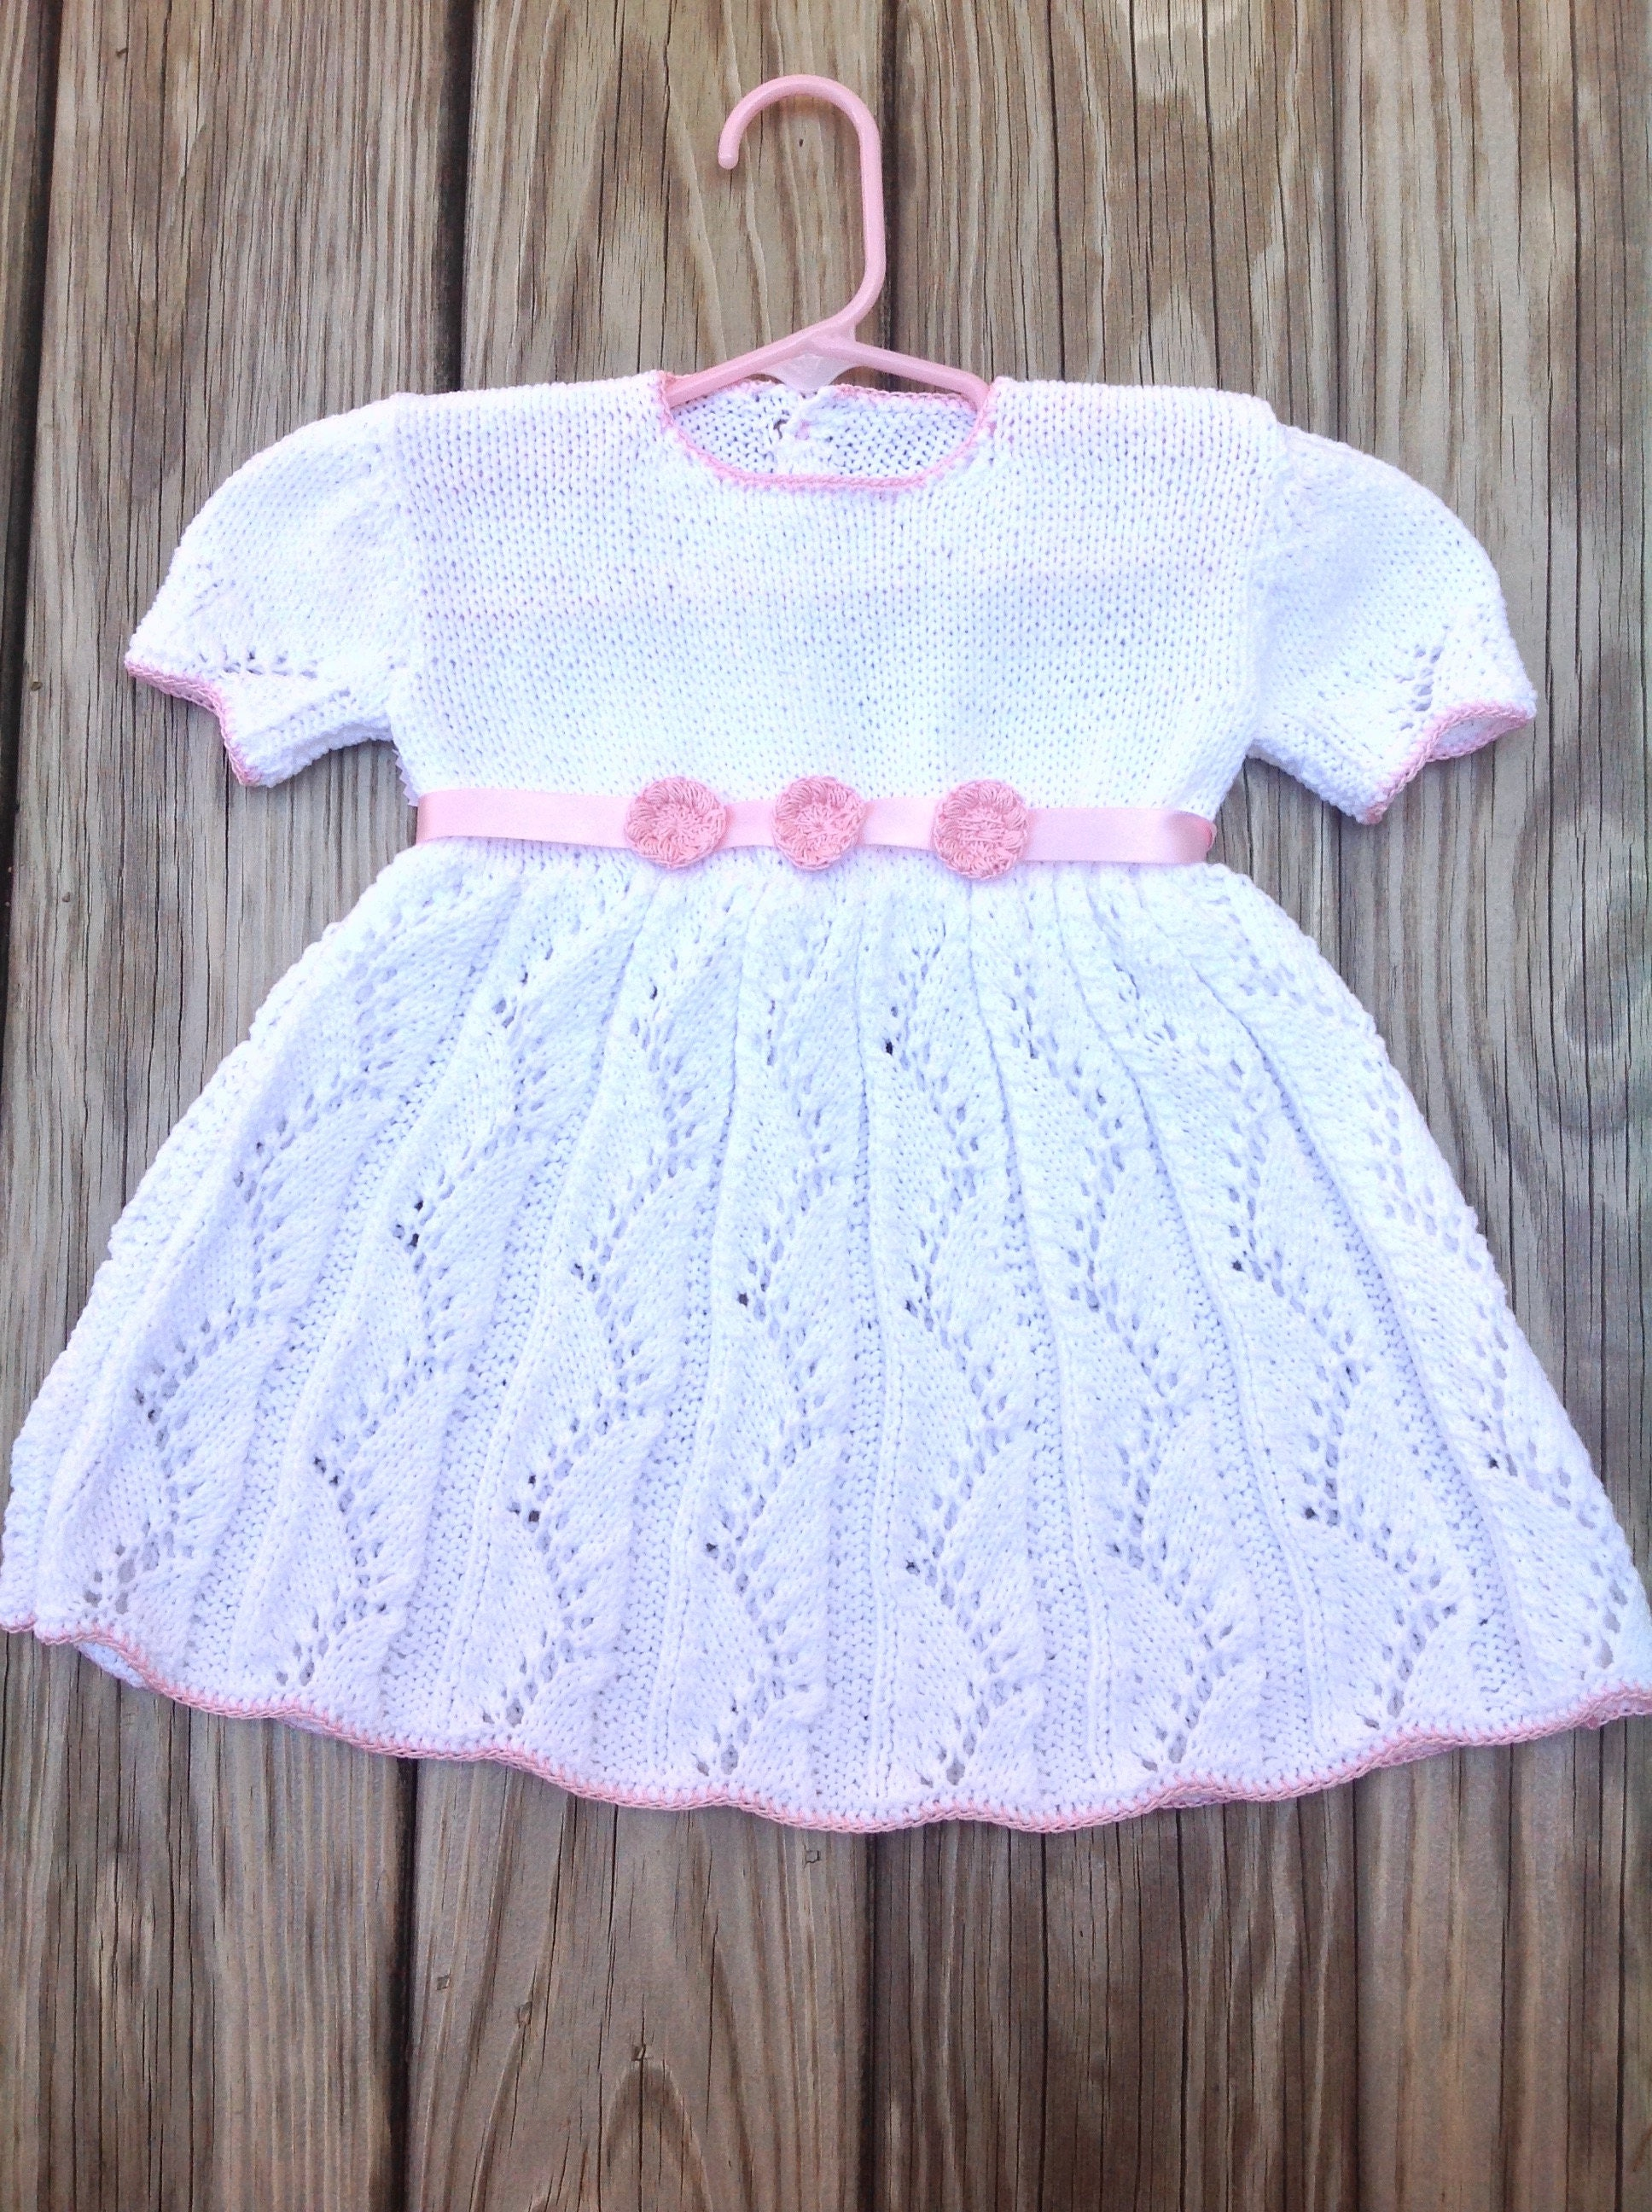 Knit baby dress with pink belt knitted white dress pink